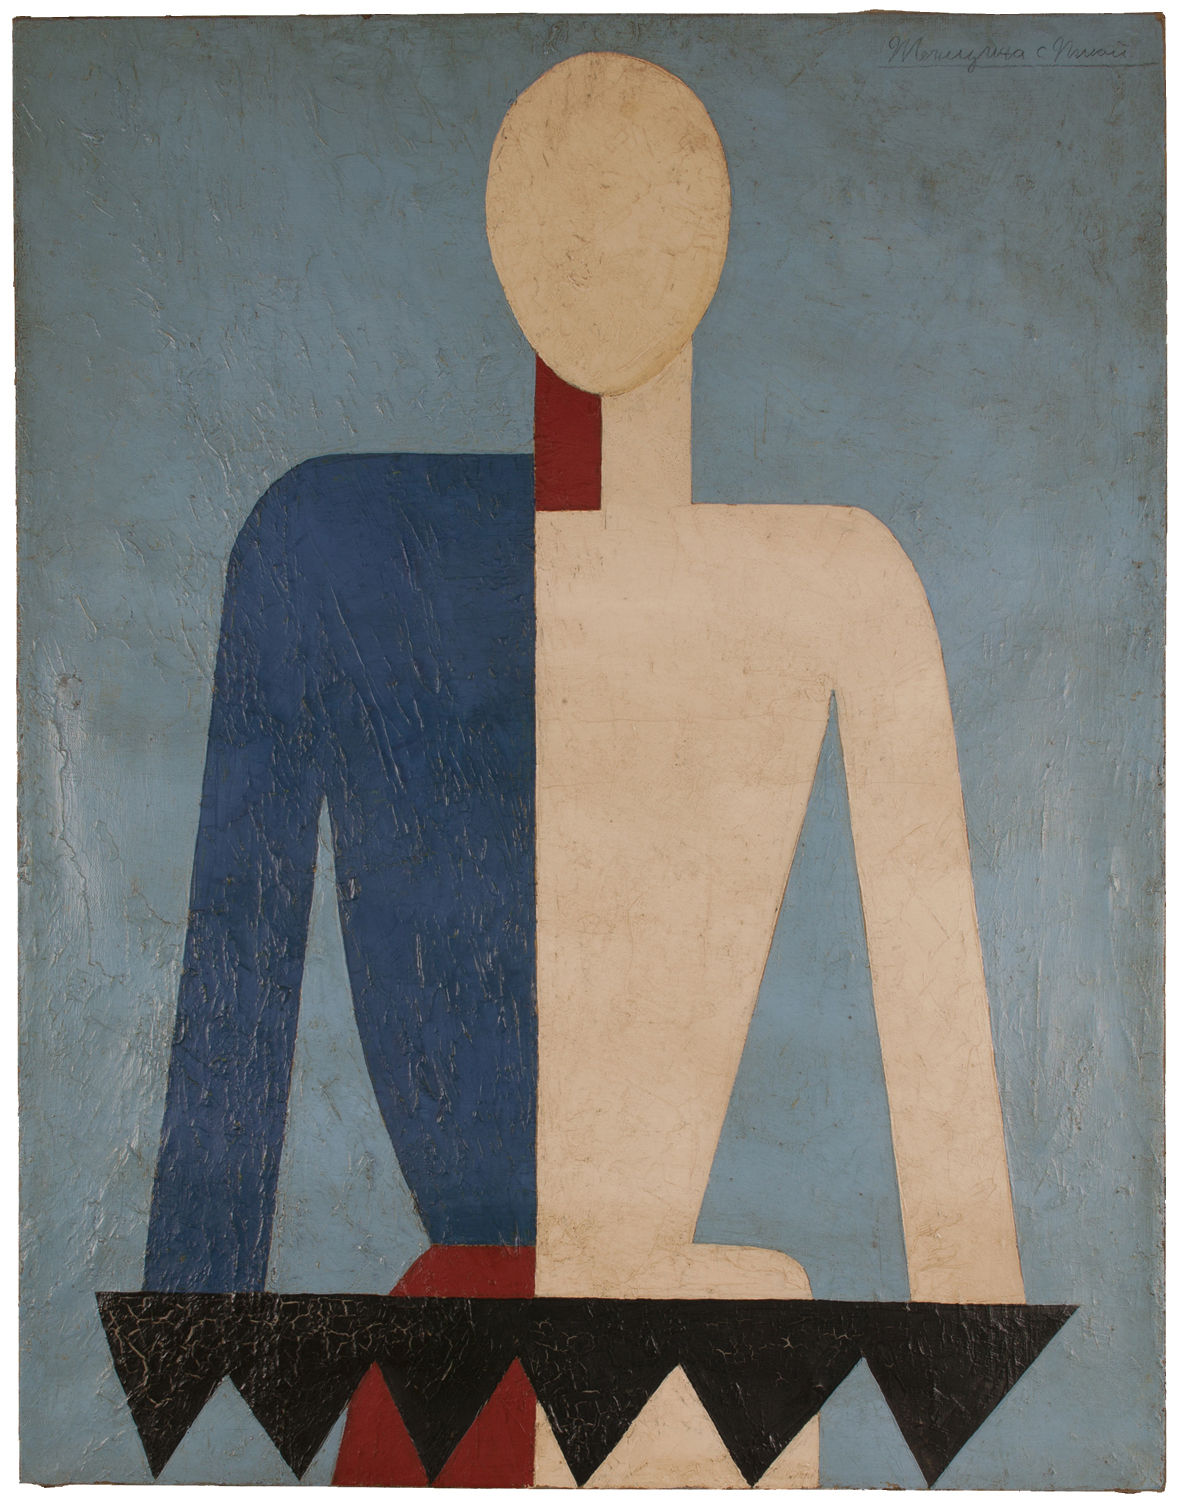 """Unattributed. Unsigned. In the style of Kasimir Malevich.Text in Cyrillic cursive (in pencil), upper right front,translates to """"Woman with a saw"""".   Oil on canvas. 90 x 70 cm."""